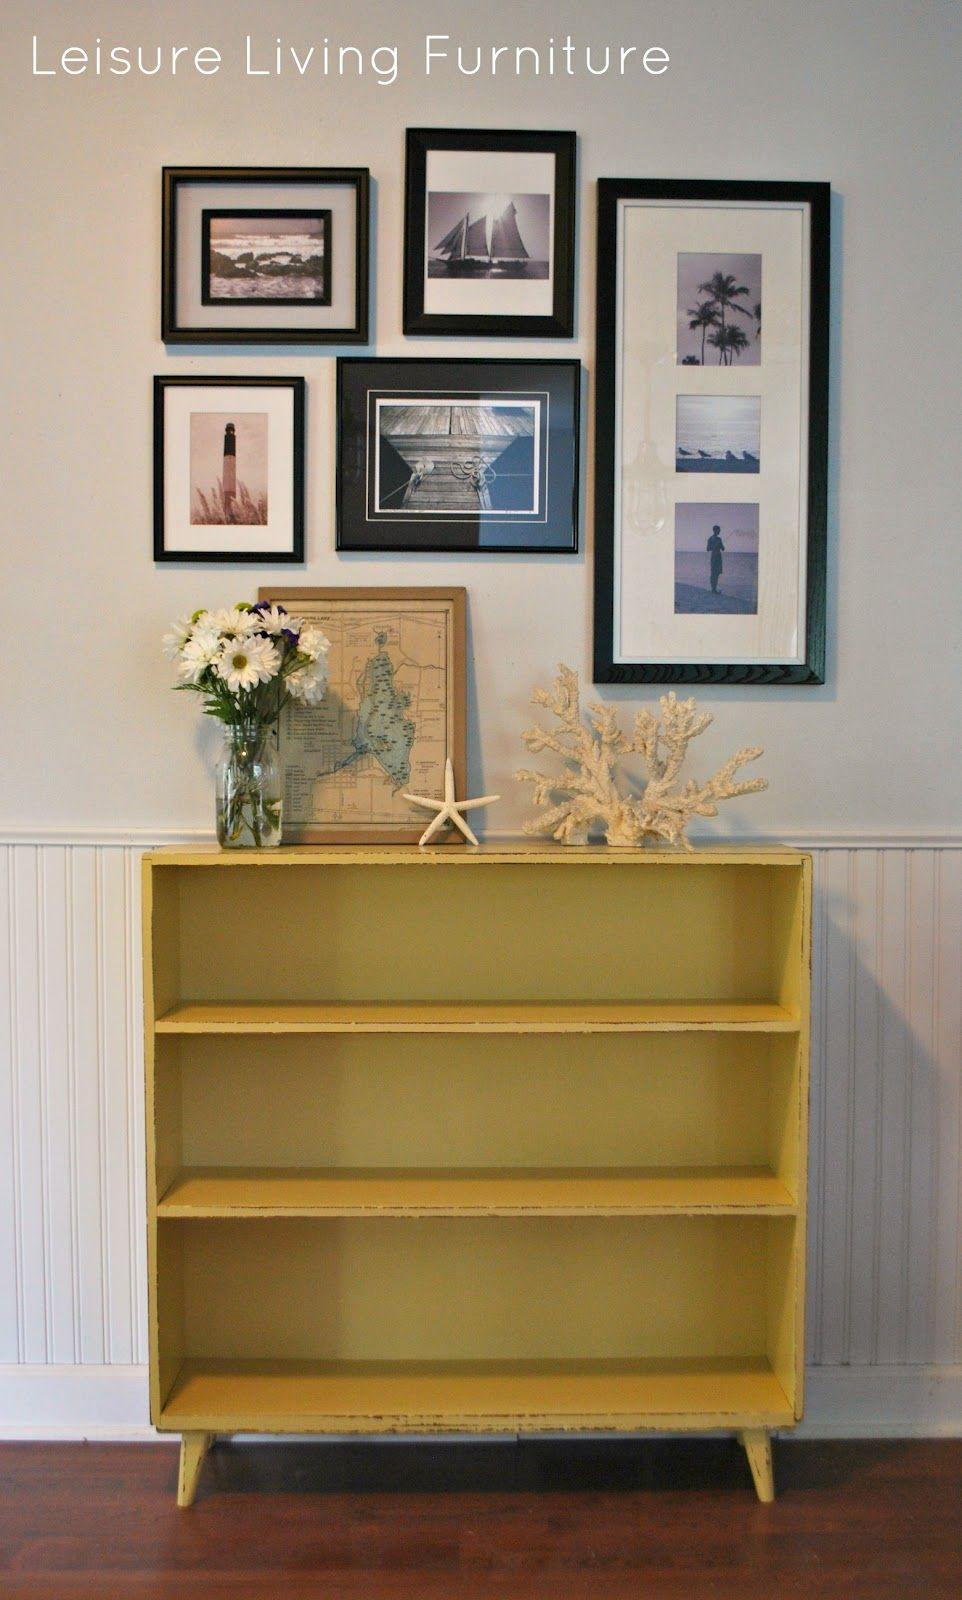 leisure living yellow bookshelf | For the Home | Pinterest | Yellow ...